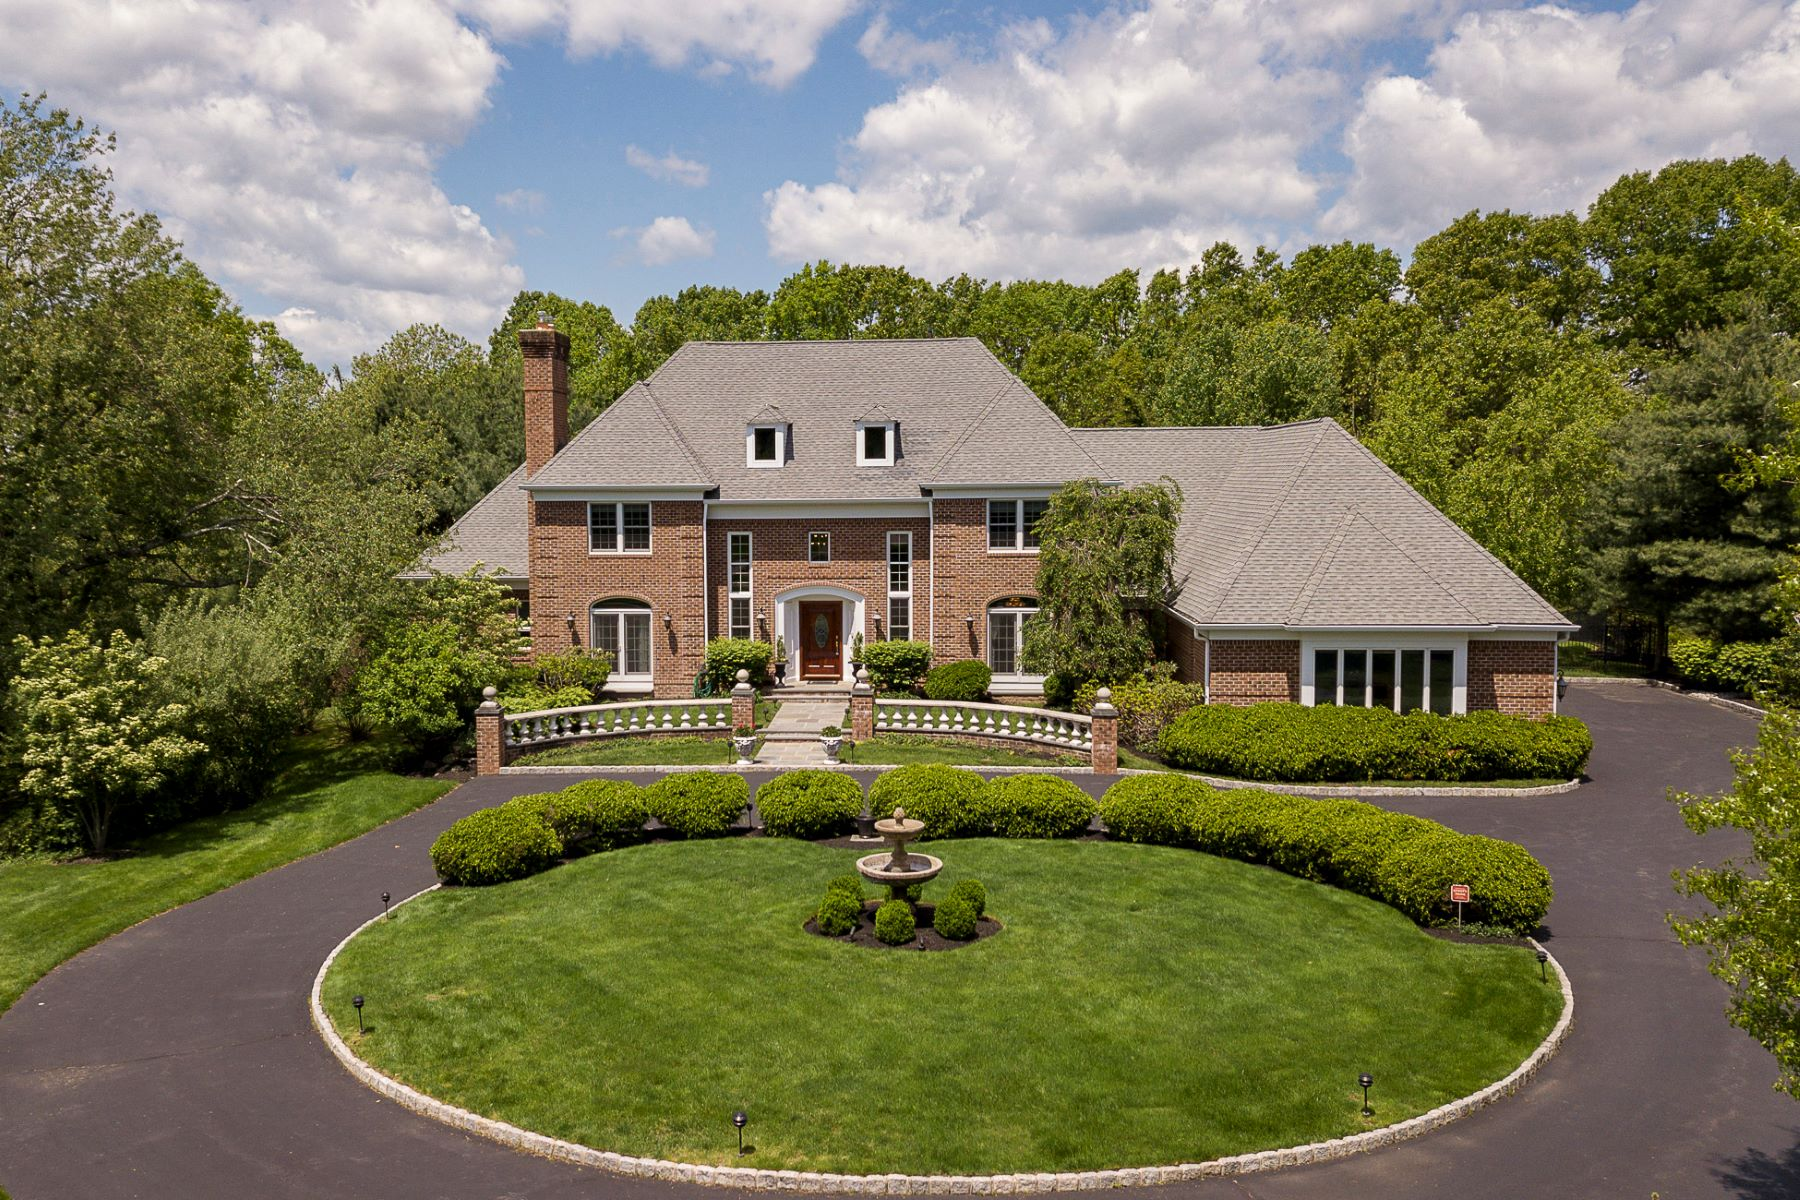 Single Family Home for Sale at Elegant and Stately In A Serene Setting 56 High Ridge Road, Skillman, New Jersey 08558 United States